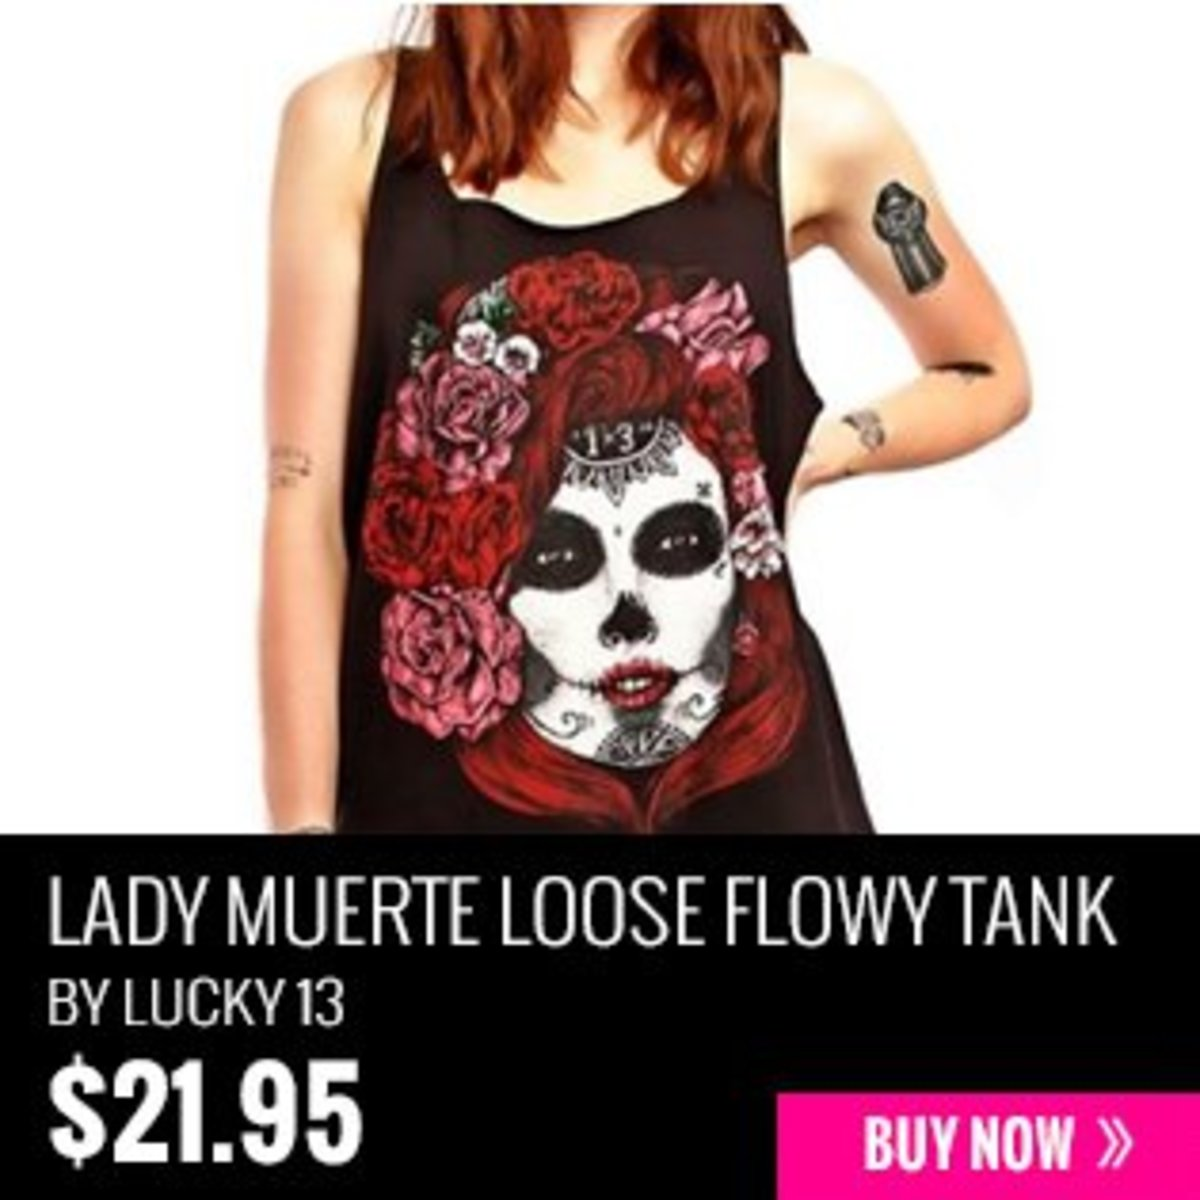 Lady Muerte Loose Flowy Tank Top by Lucky 13